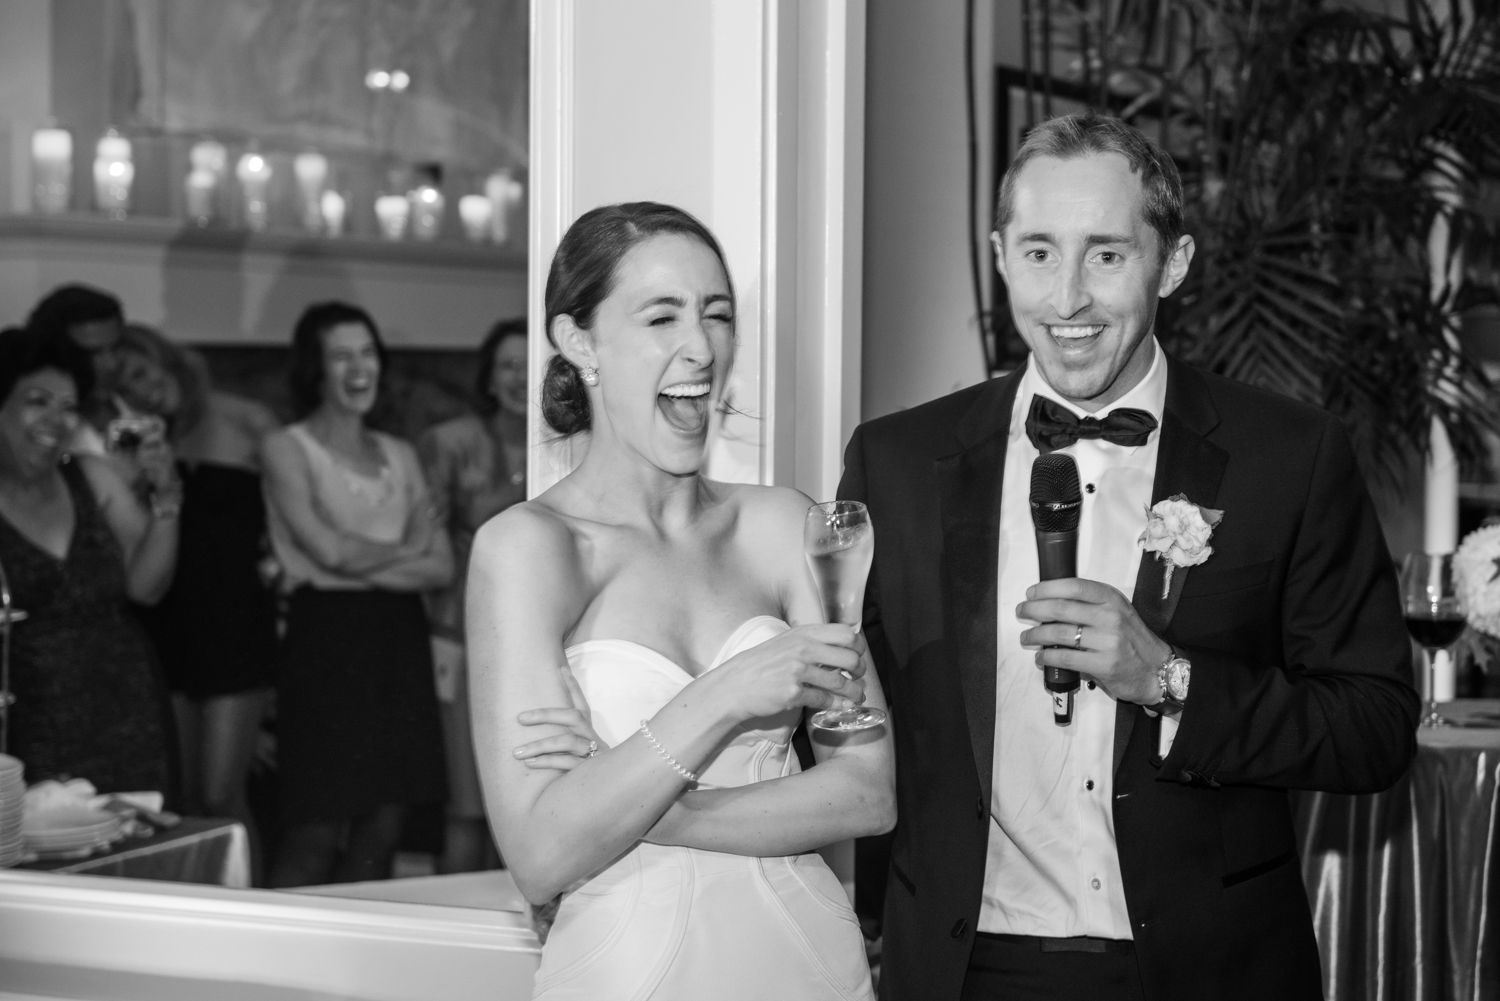 Palpable joy during the groom's champagne toast seen in the bride's laughter; photo by Sylvie Gil